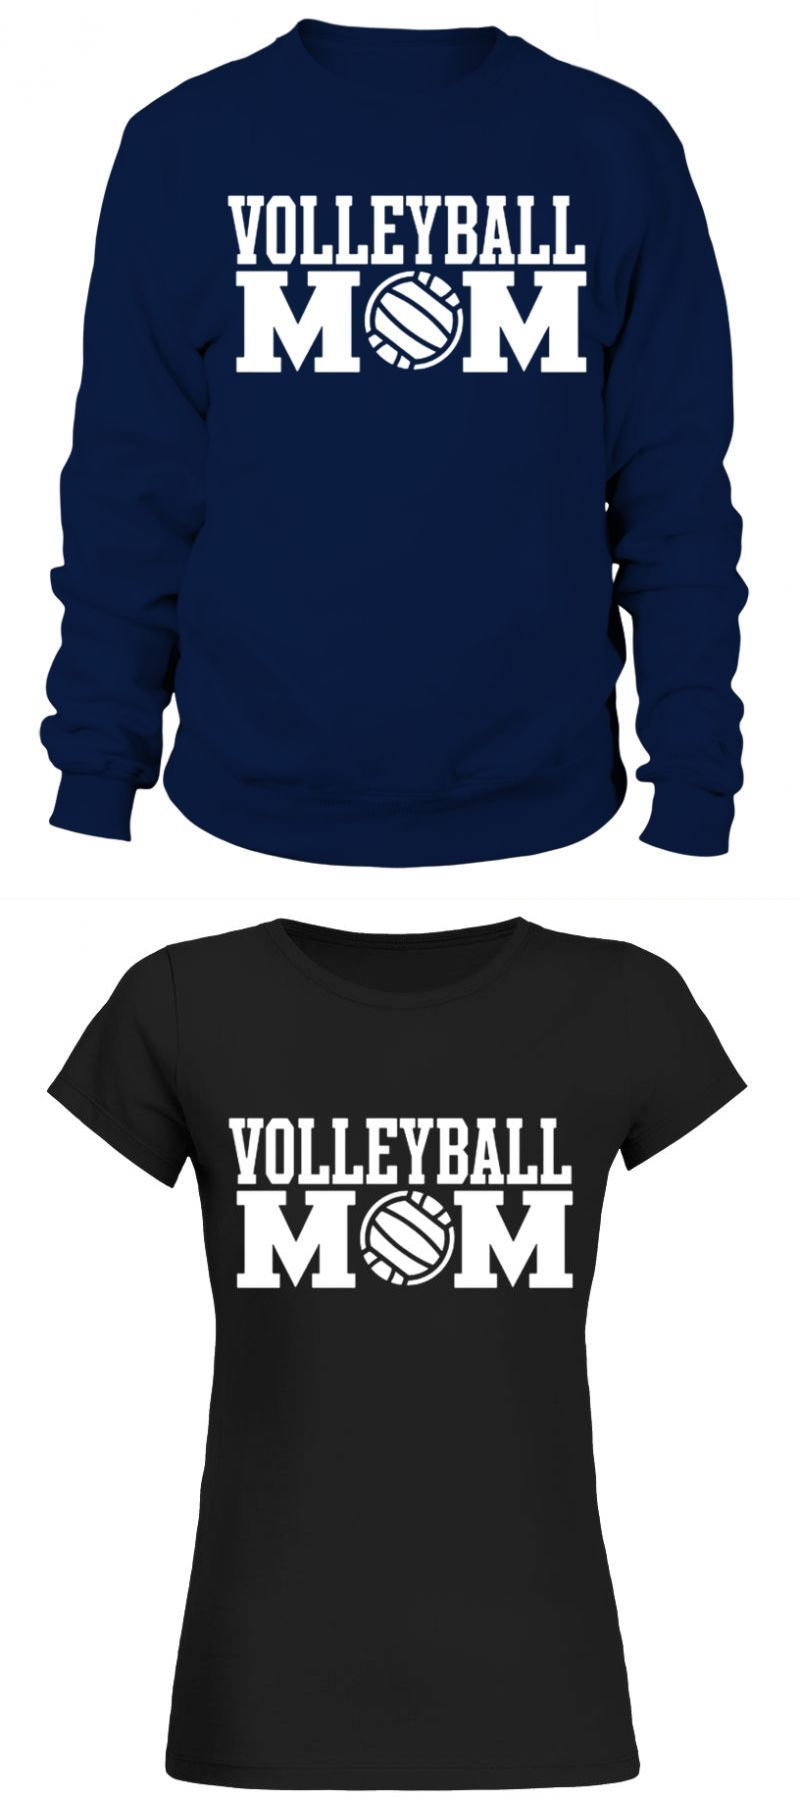 Volleyball Volley Love Team Beach Player Tshirt T Shirt Volleyball Evolution Volleyball Volley Love Team Beach Volleyball T Shirt Designs Volleyball Camp